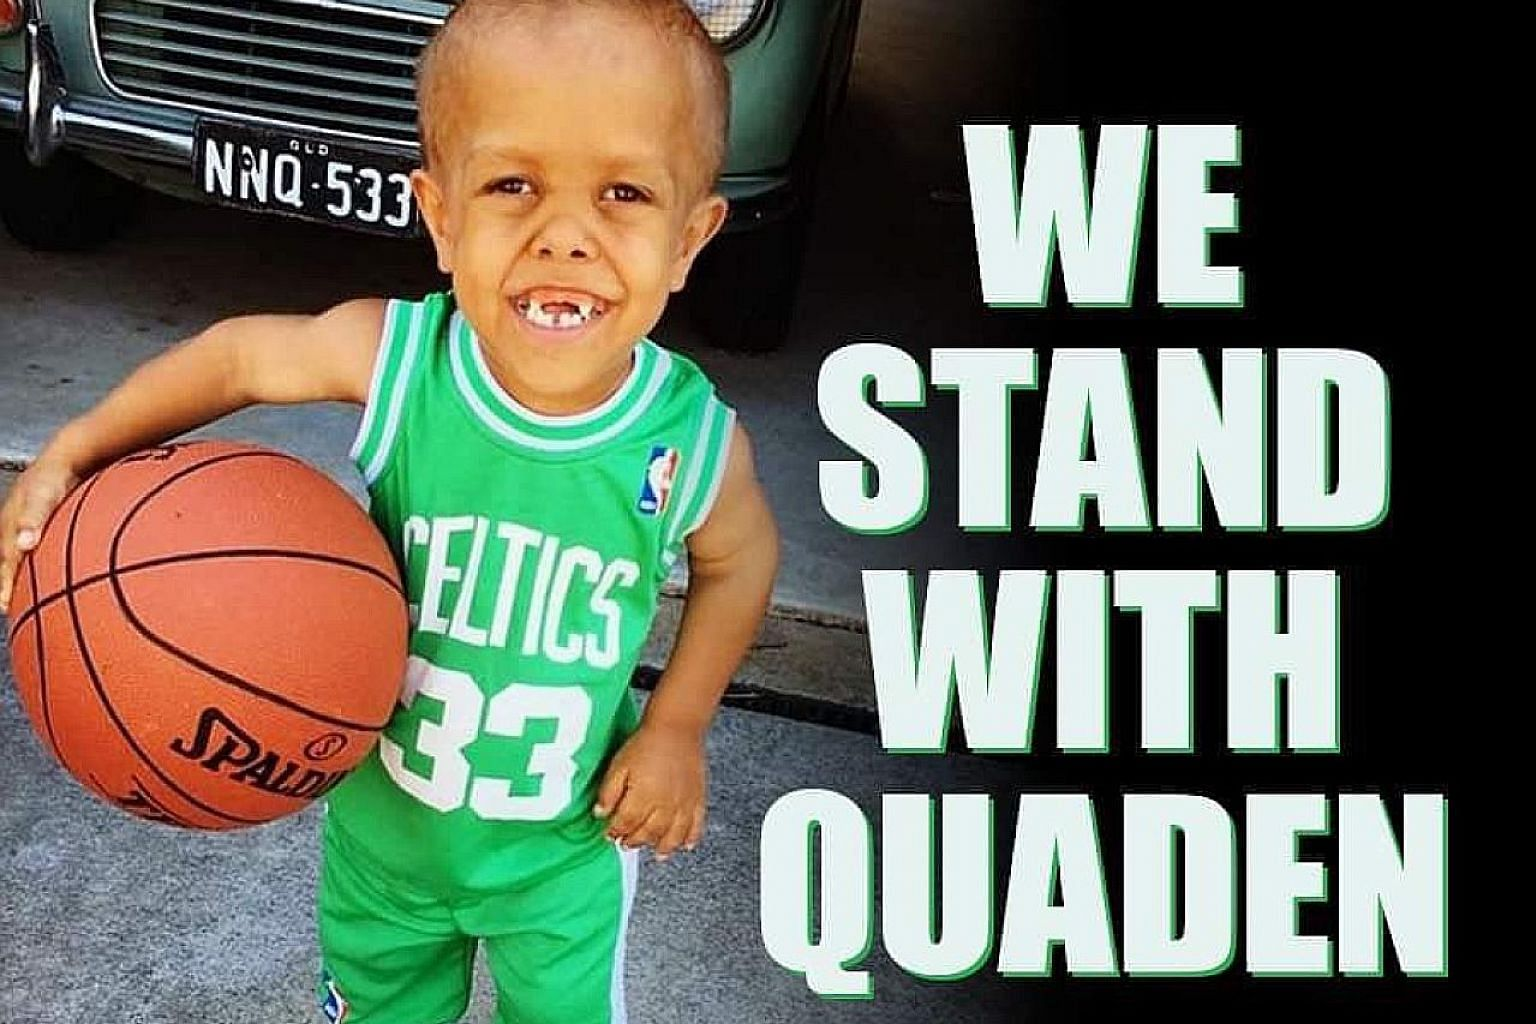 Chatri Sityodtong says his heart was broken when he saw the six-minute video of Quaden Bayles being bullied. Boston Celtics player Enes Kanter's picture in his post on Quaden Bayles with #WestandwithQuaden hashtag. PHOTO: TWITTER/ENESKANTER